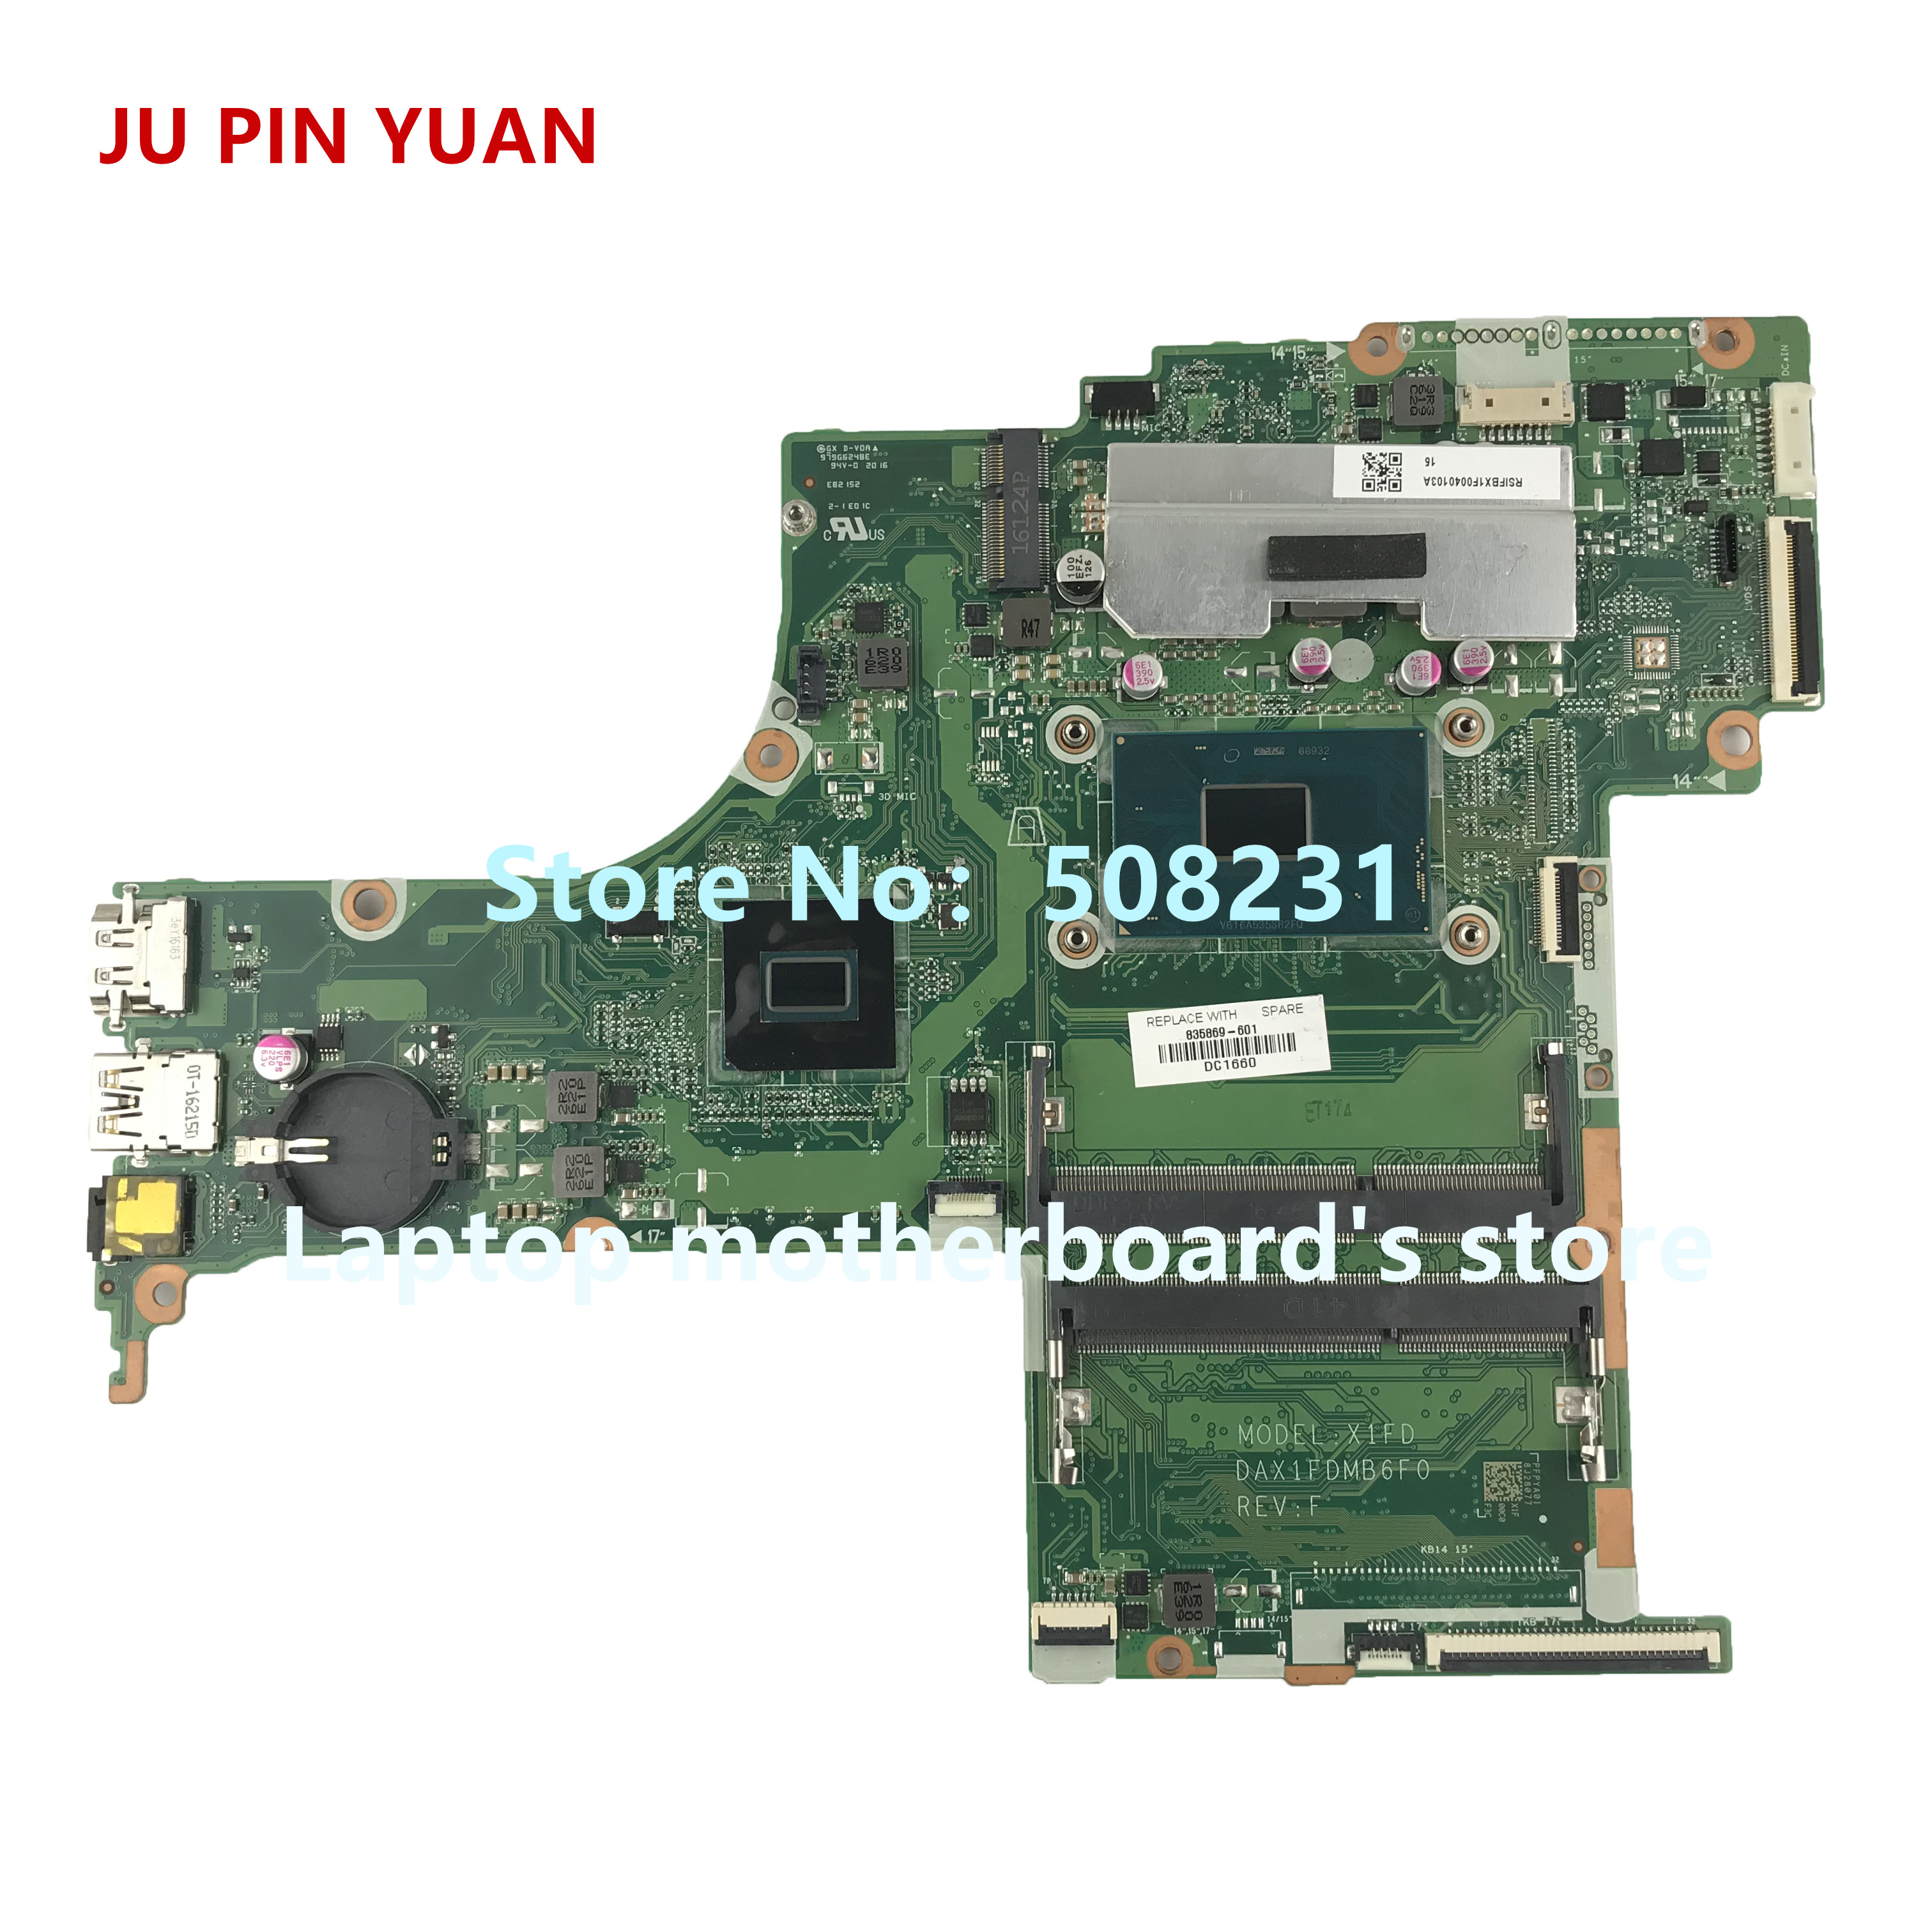 JU PIN YUAN 835869-001 DAX1FDMB6F0 835869-601 mainboard for HP ENVY Notebook 17-G 17-S 17T-S Laptop motherboard with i7-6700HQJU PIN YUAN 835869-001 DAX1FDMB6F0 835869-601 mainboard for HP ENVY Notebook 17-G 17-S 17T-S Laptop motherboard with i7-6700HQ